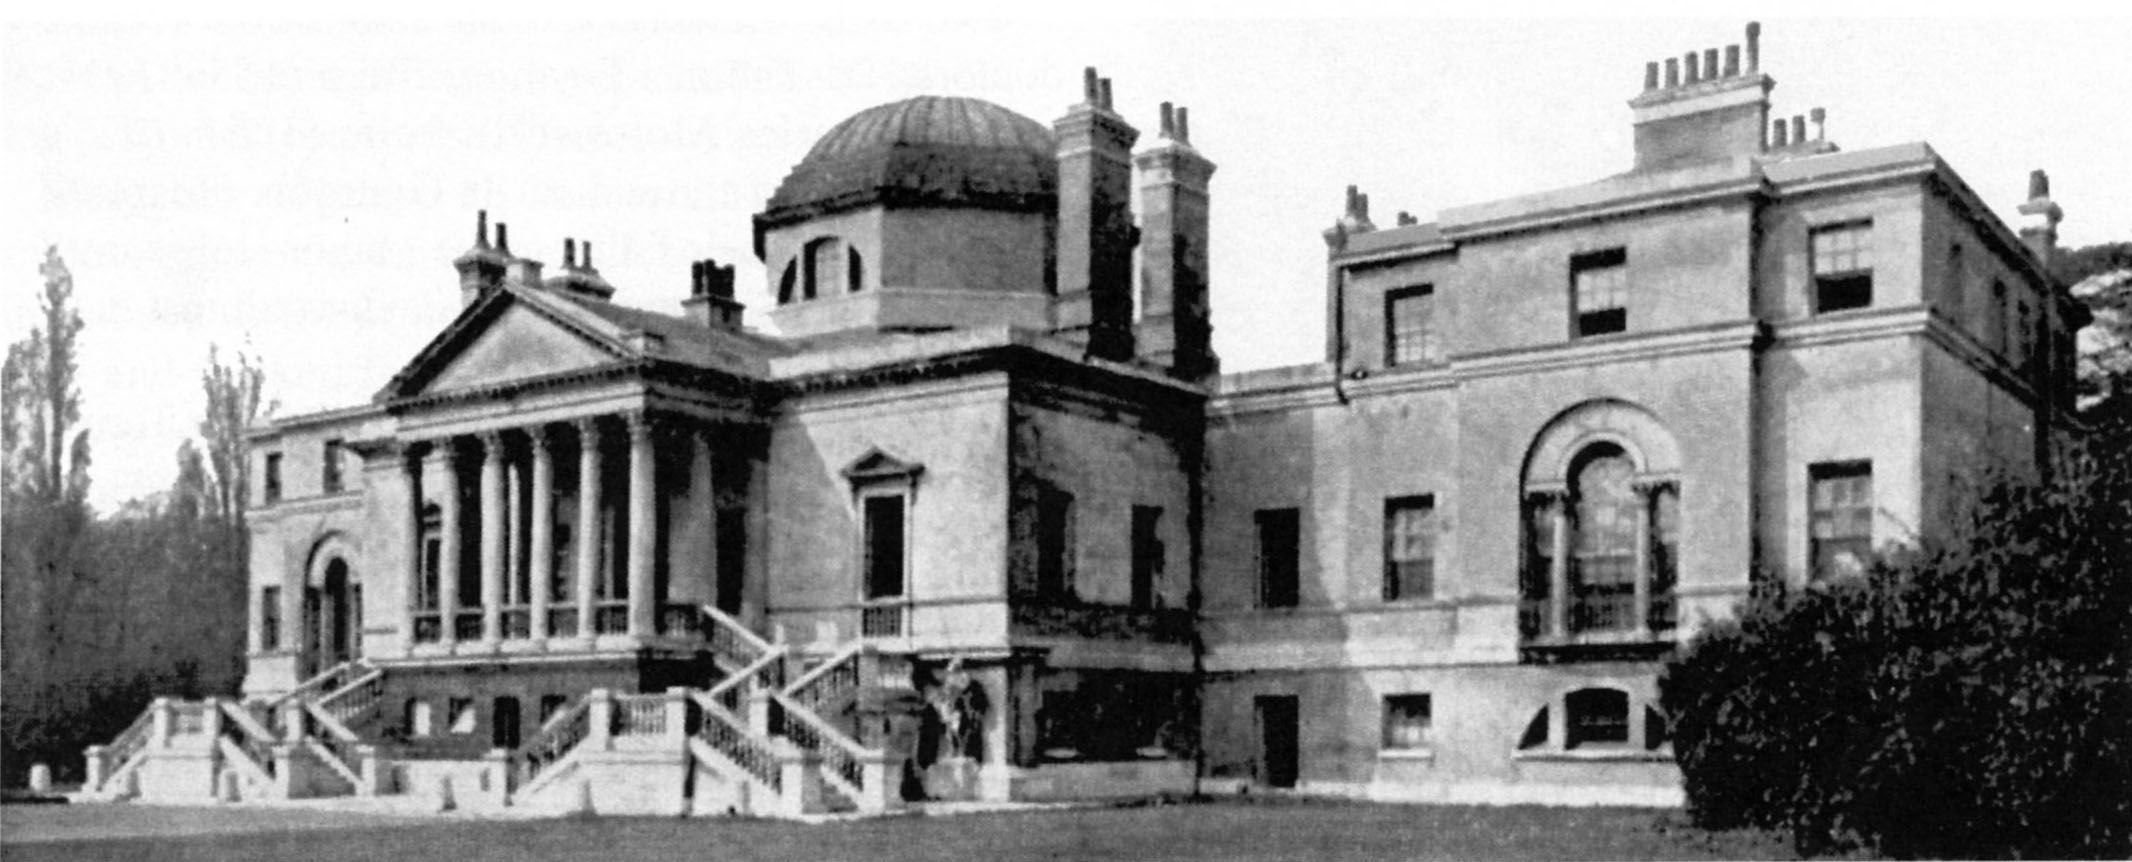 Chiswick House when it was the Asylum. Note:the two wings were demolished in the 1950s